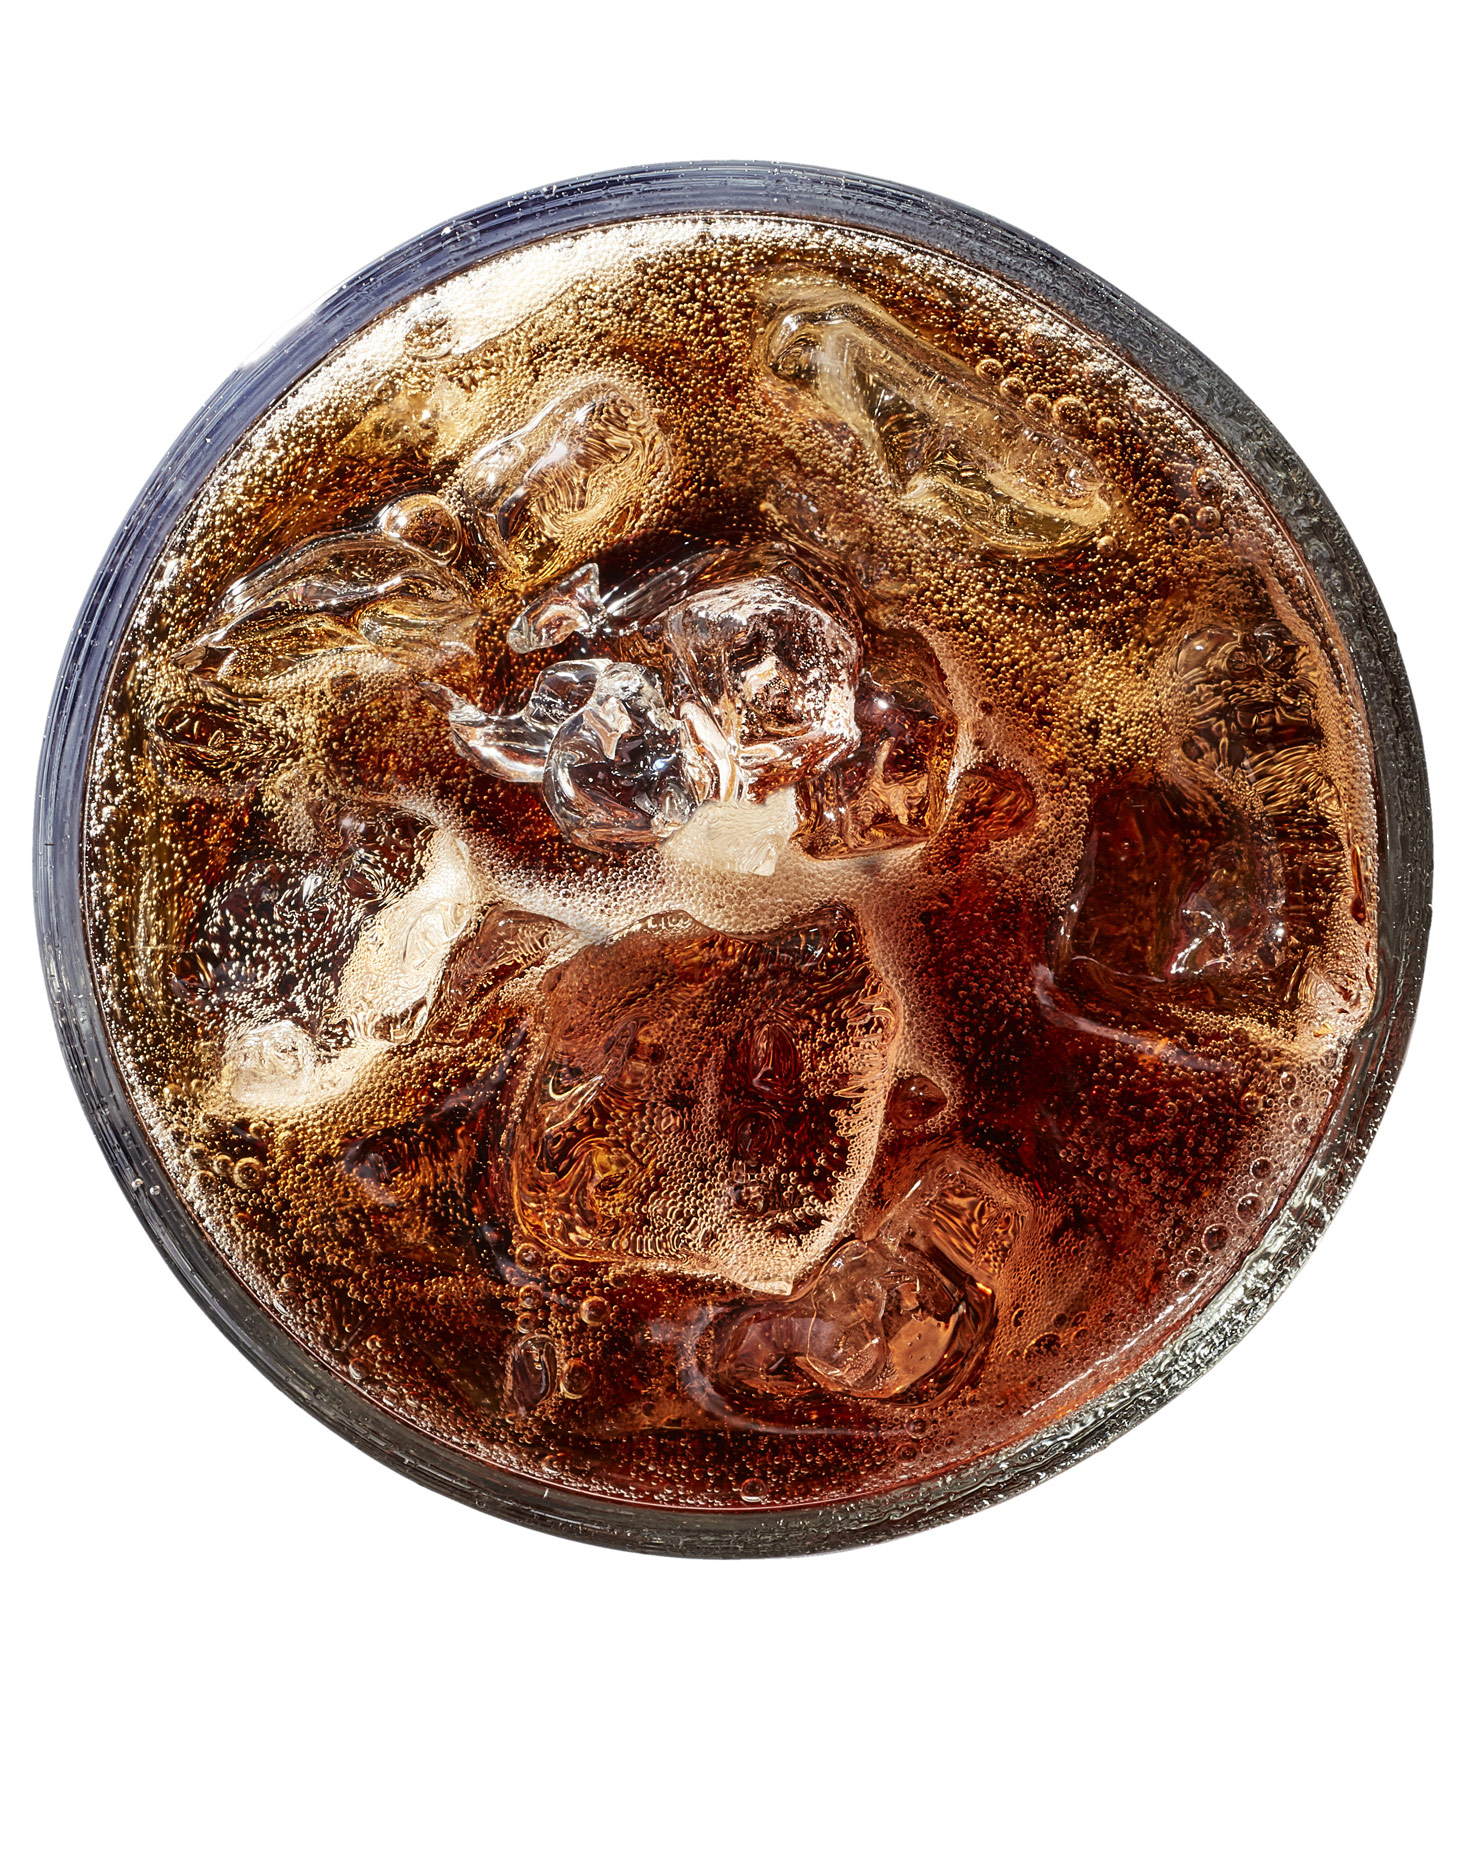 Beverages_072619_WMP_DietDrPepper_0412